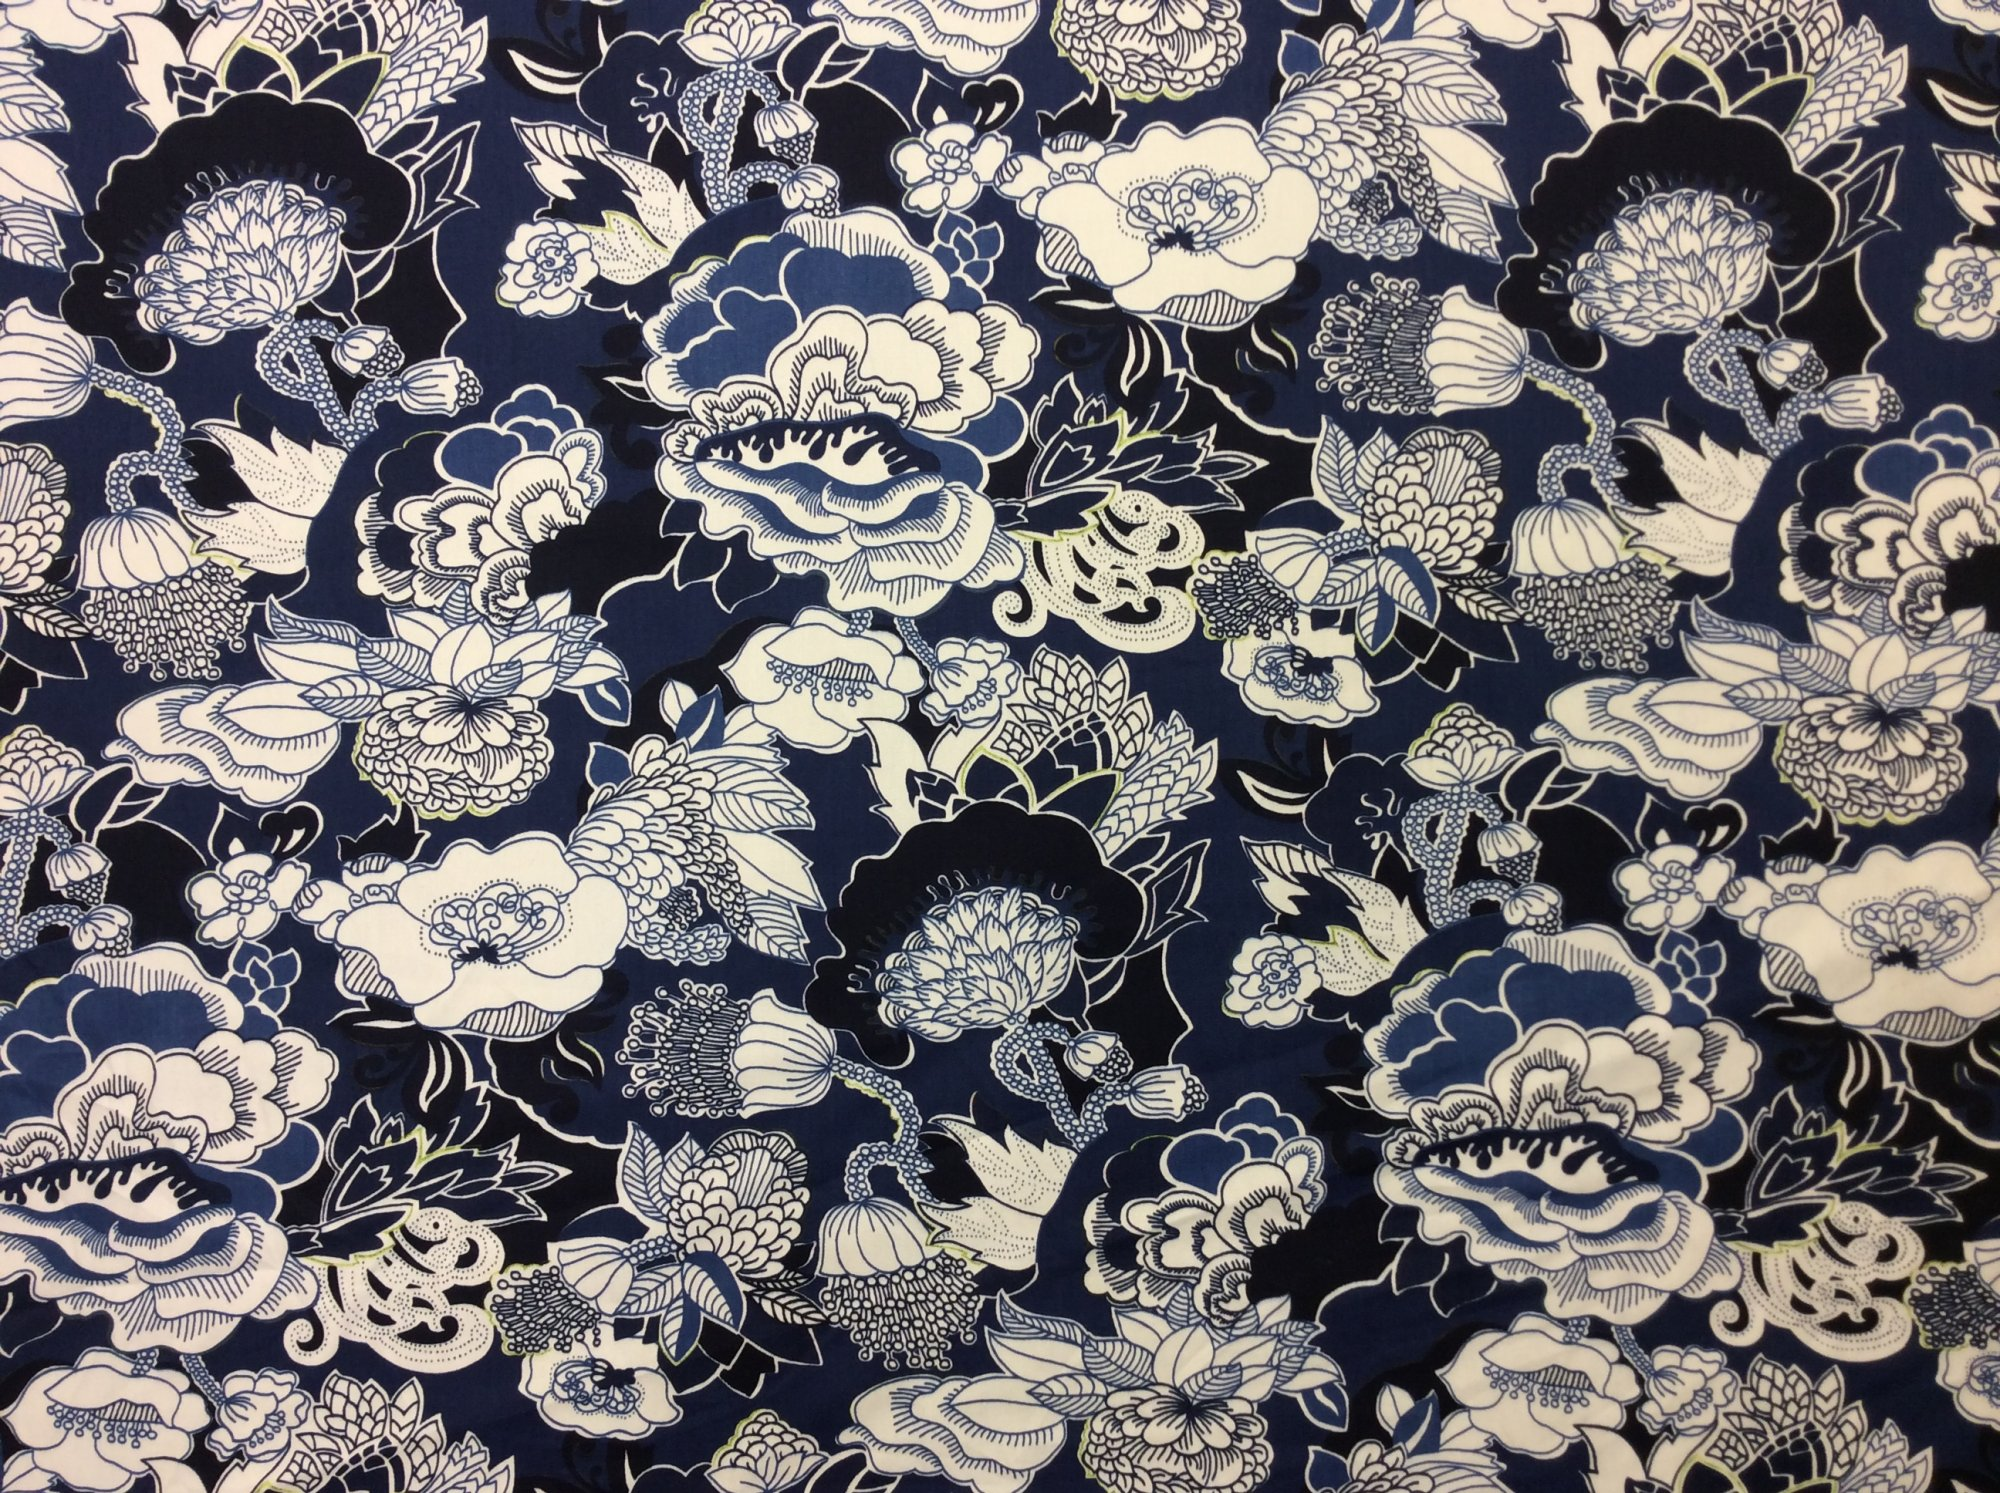 Duralee Kiji Toile Contemporary Floral Cotton Twill Navy Bright Blue Home Dec Fabric OR105